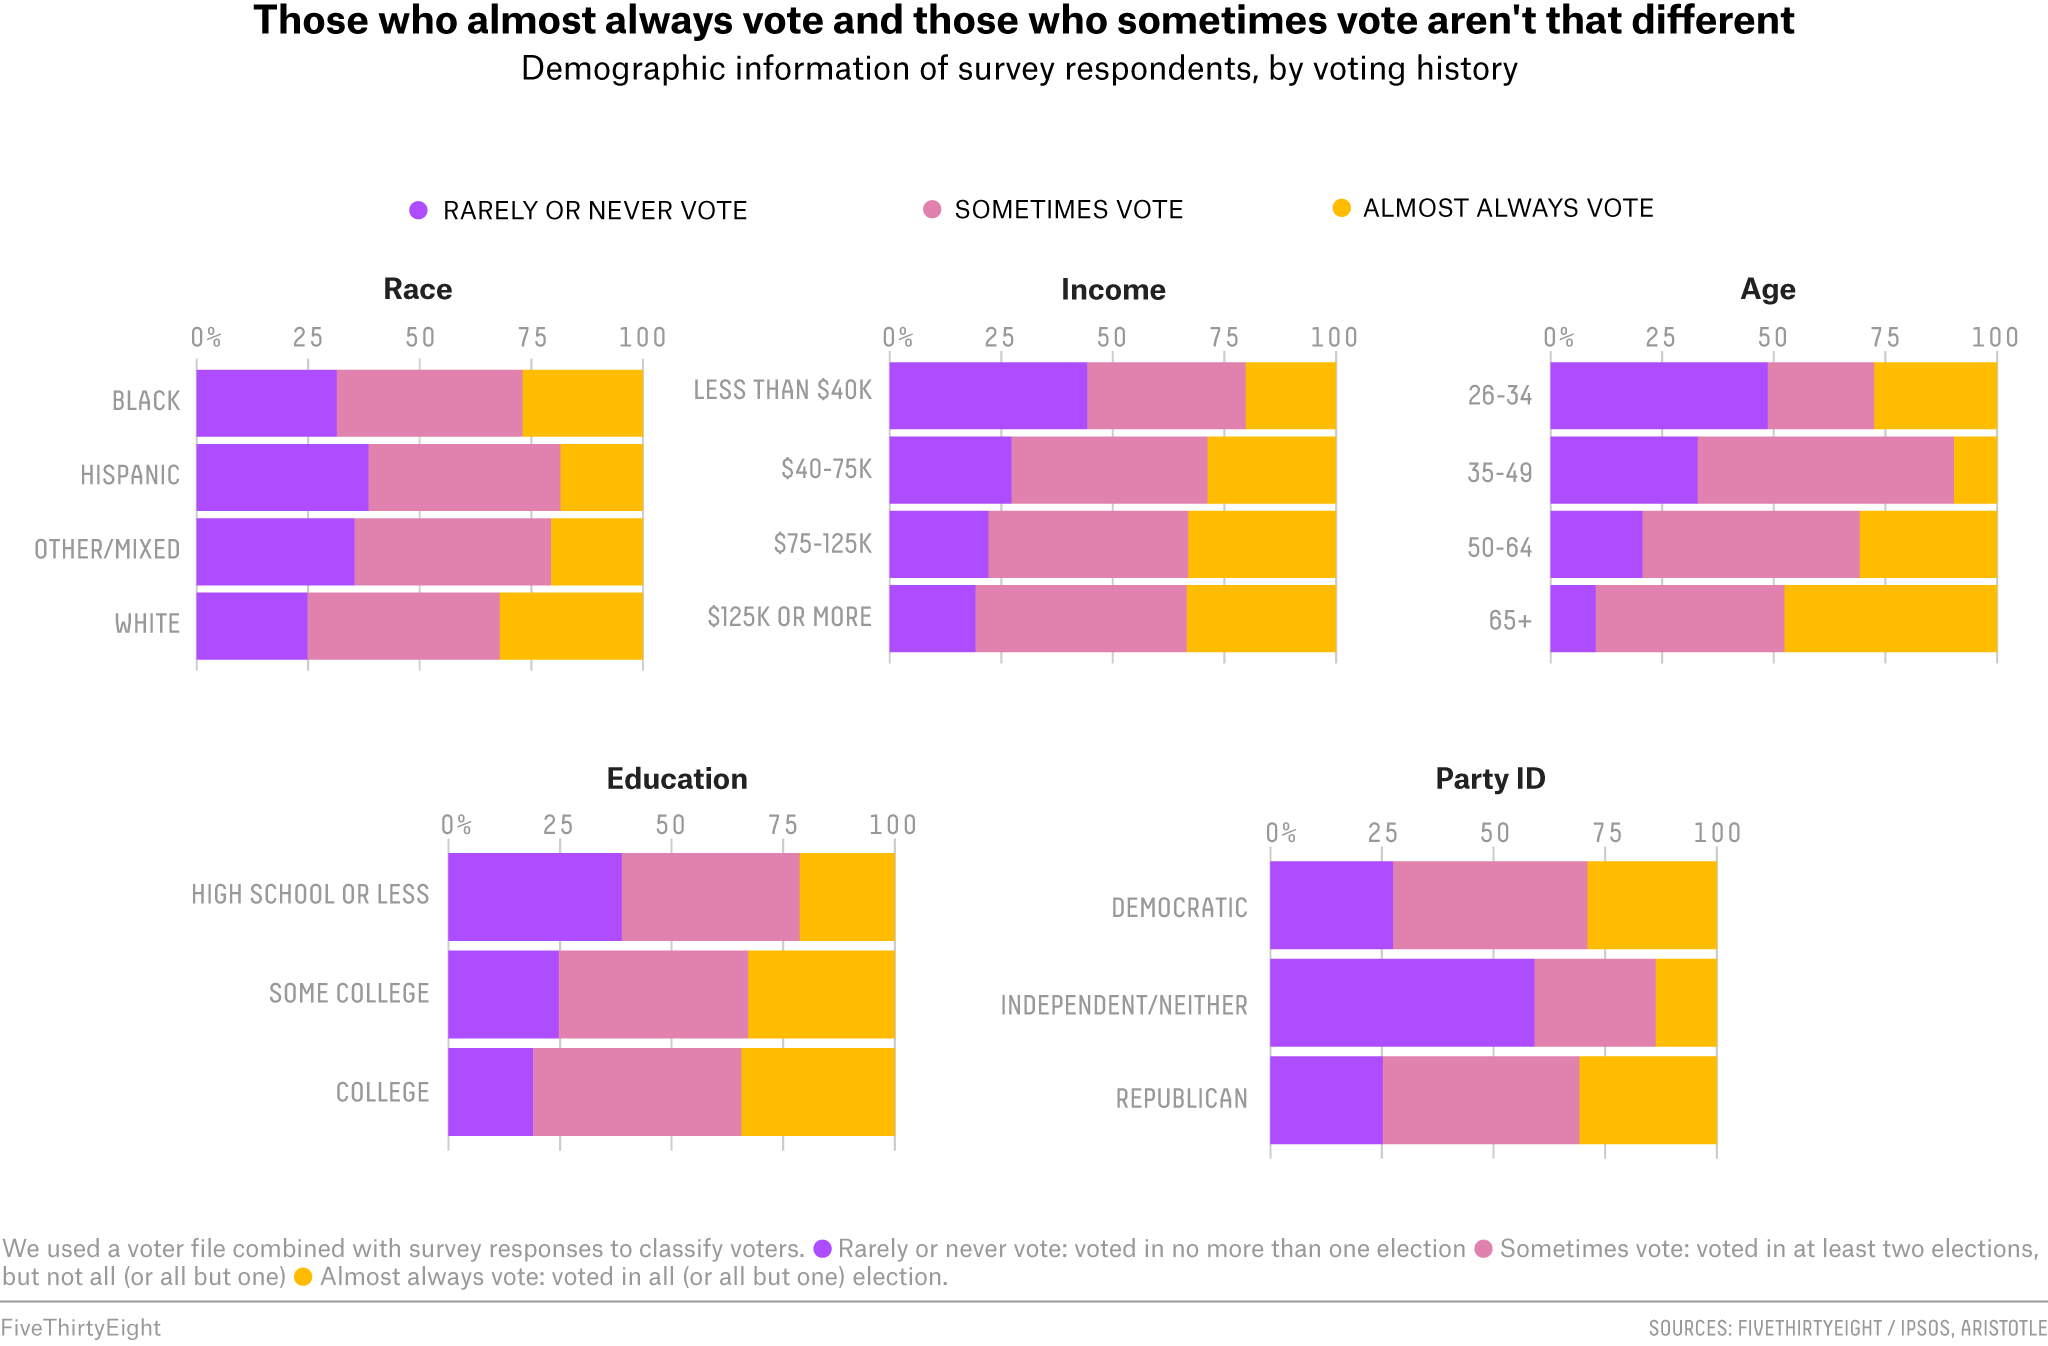 Those who almost always vote and those who sometimes vote aren't that different